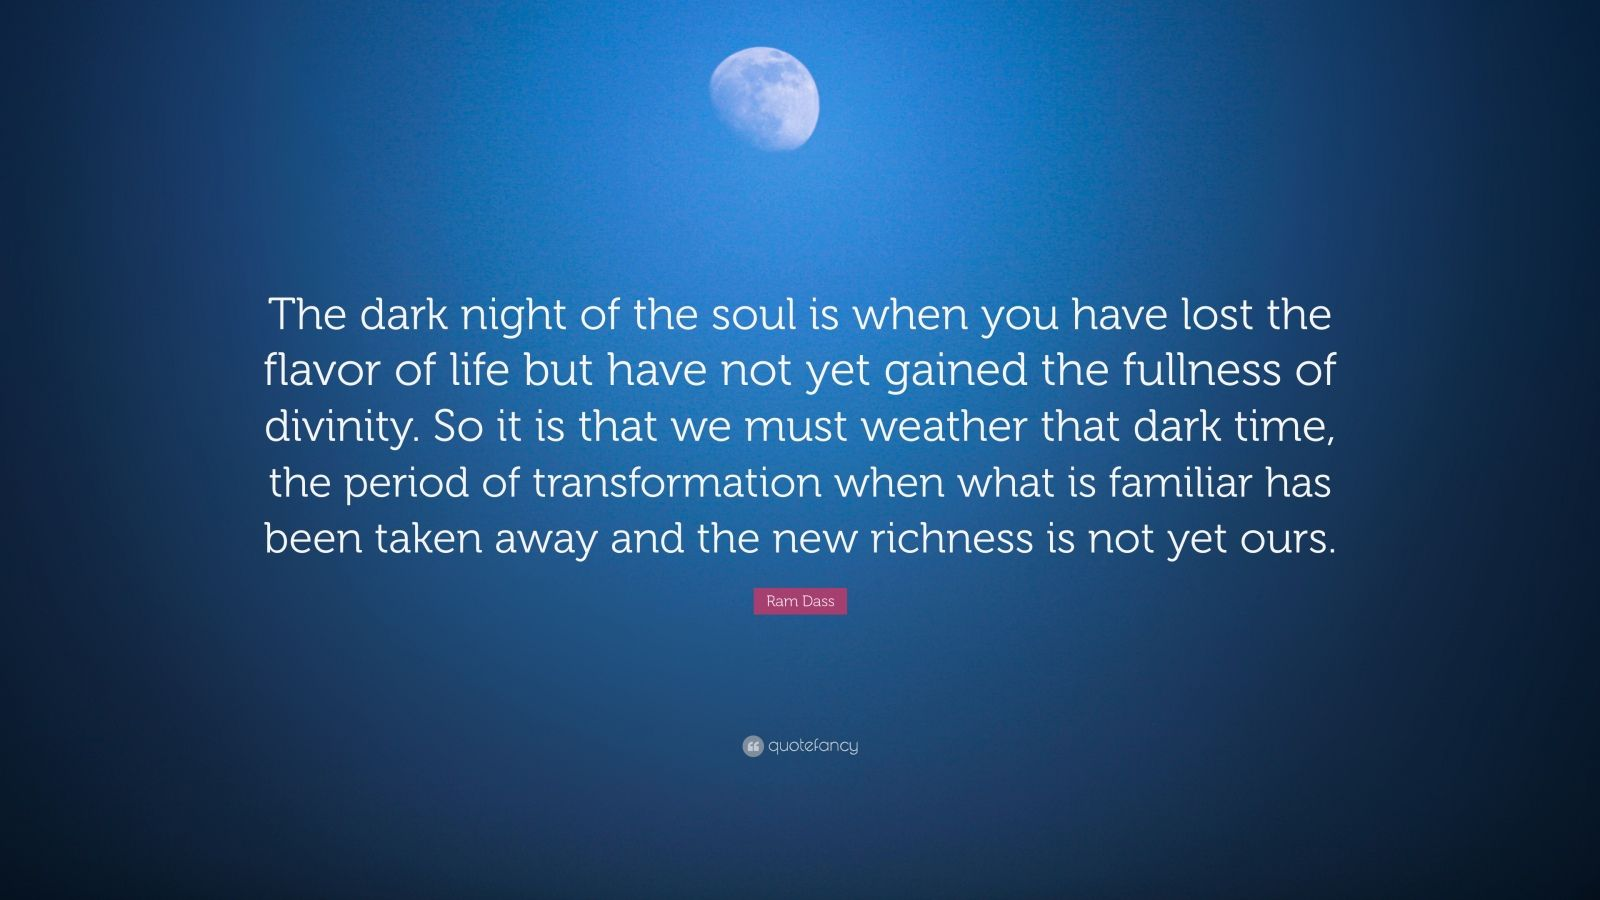 Buddha Quotes With Wallpaper Ram Dass Quote The Dark Night Of The Soul Is When You